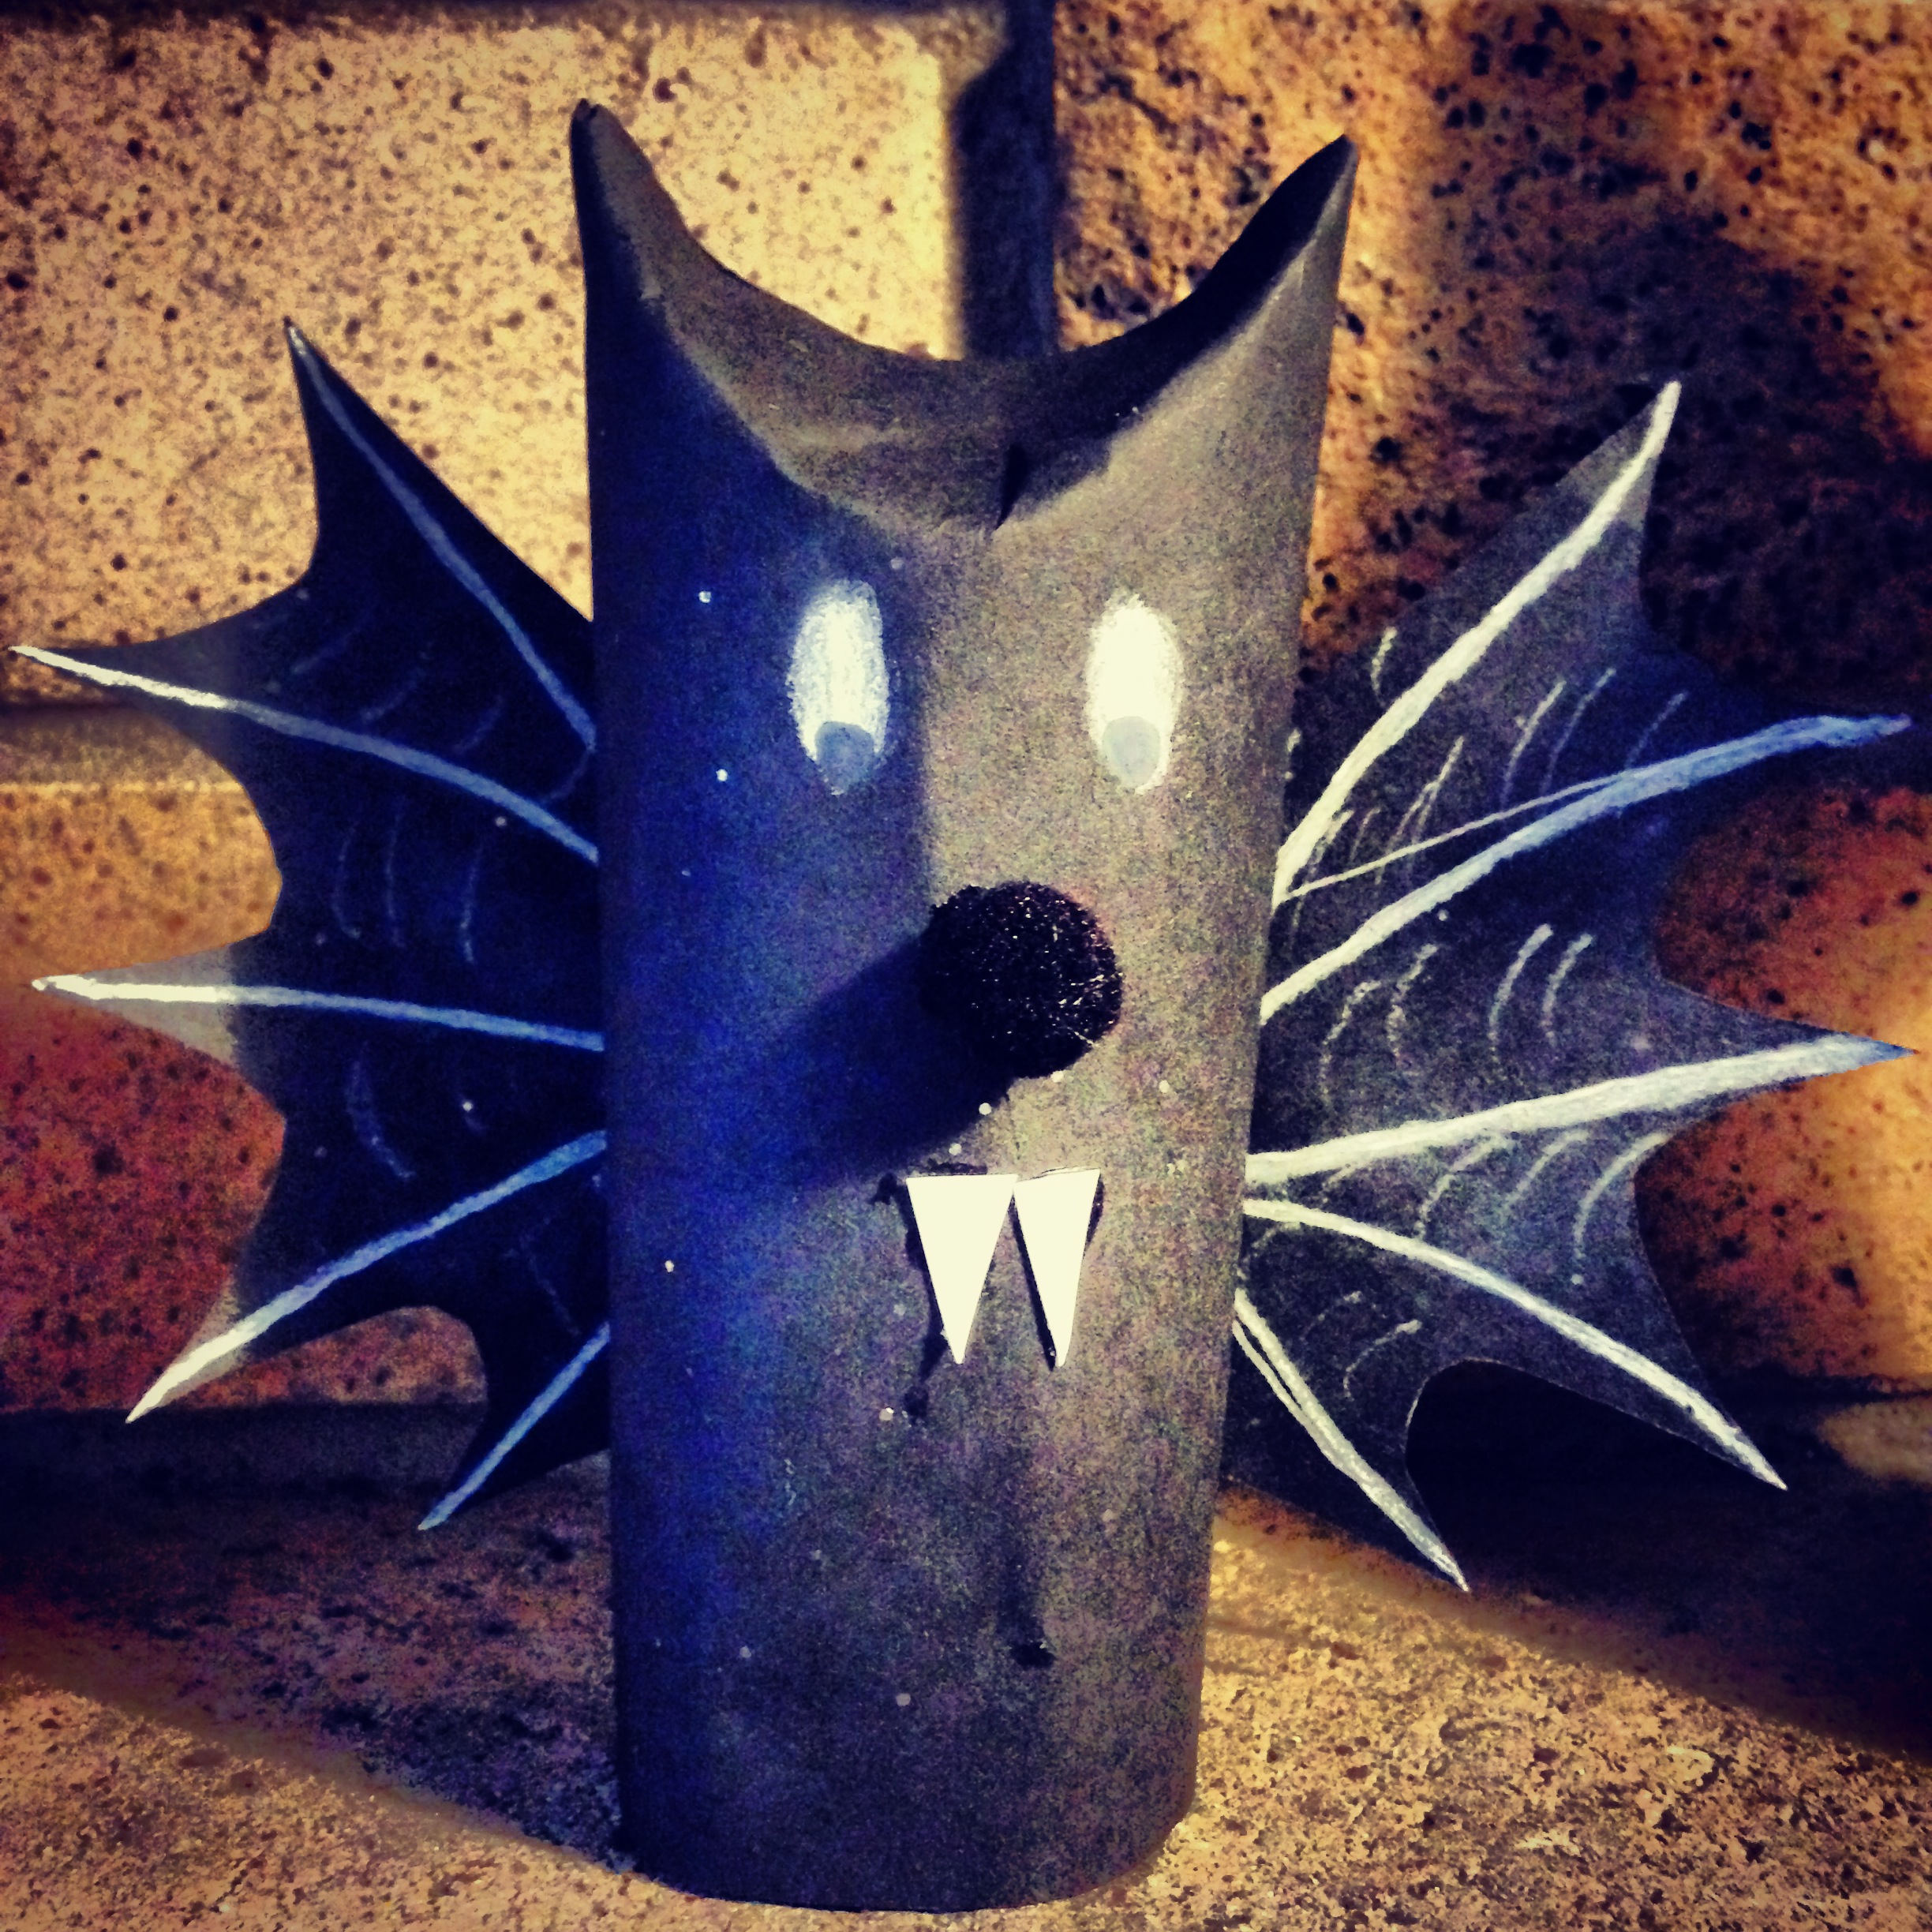 Recycled Halloween Decorations: Chipper Recycle Crafts: Halloween Decorations